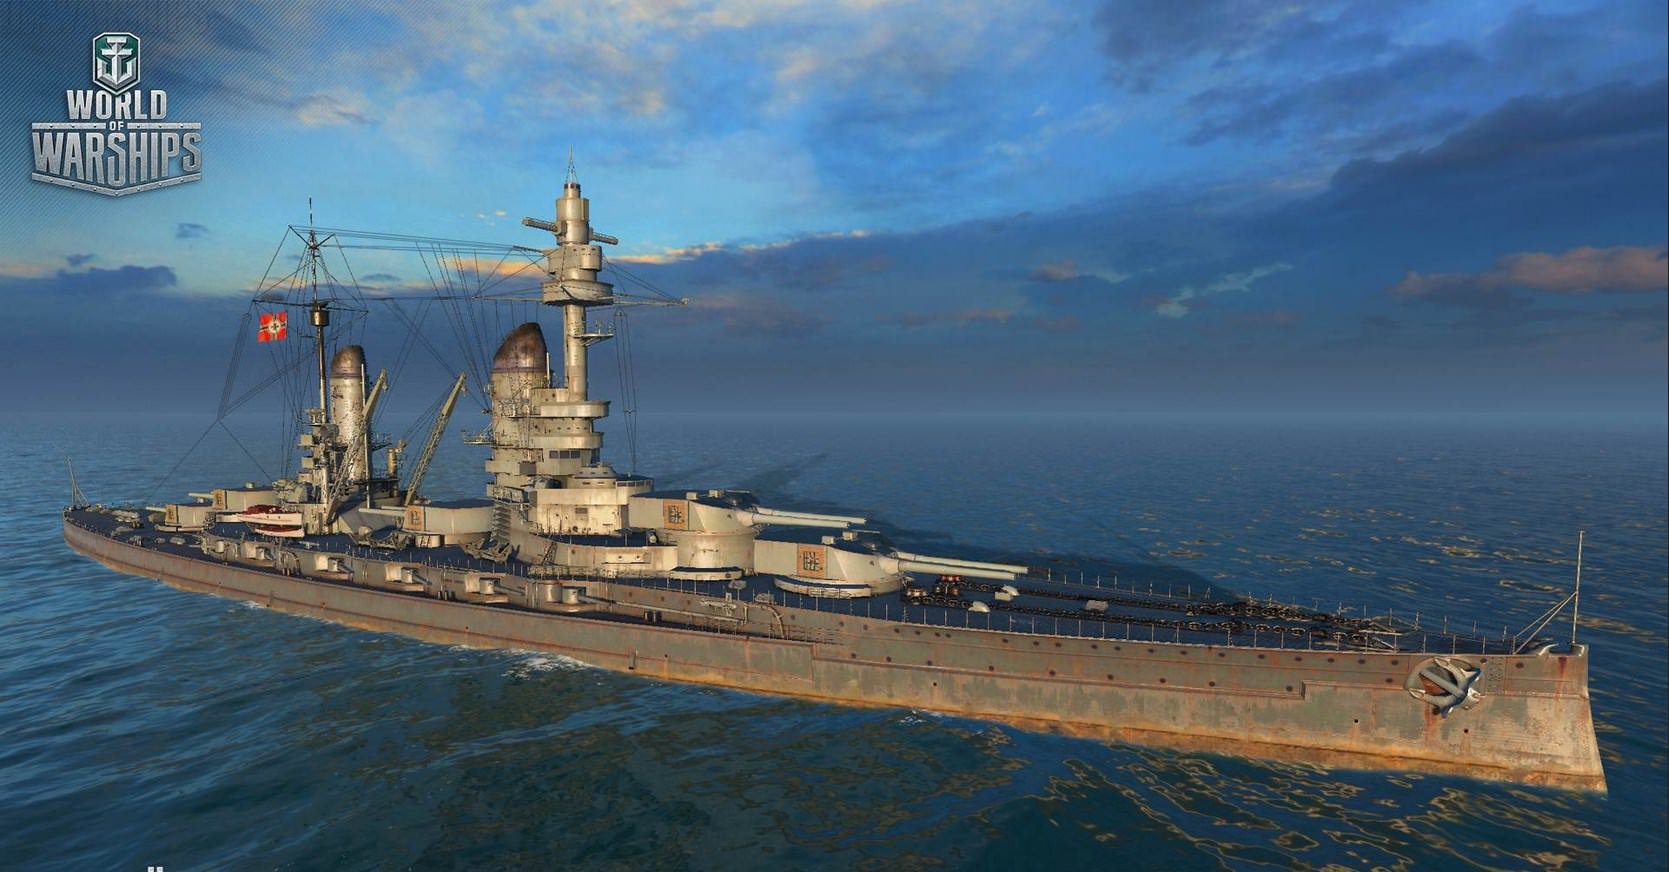 World of Warships Best Battleships For Every Tier | GAMERS DECIDE